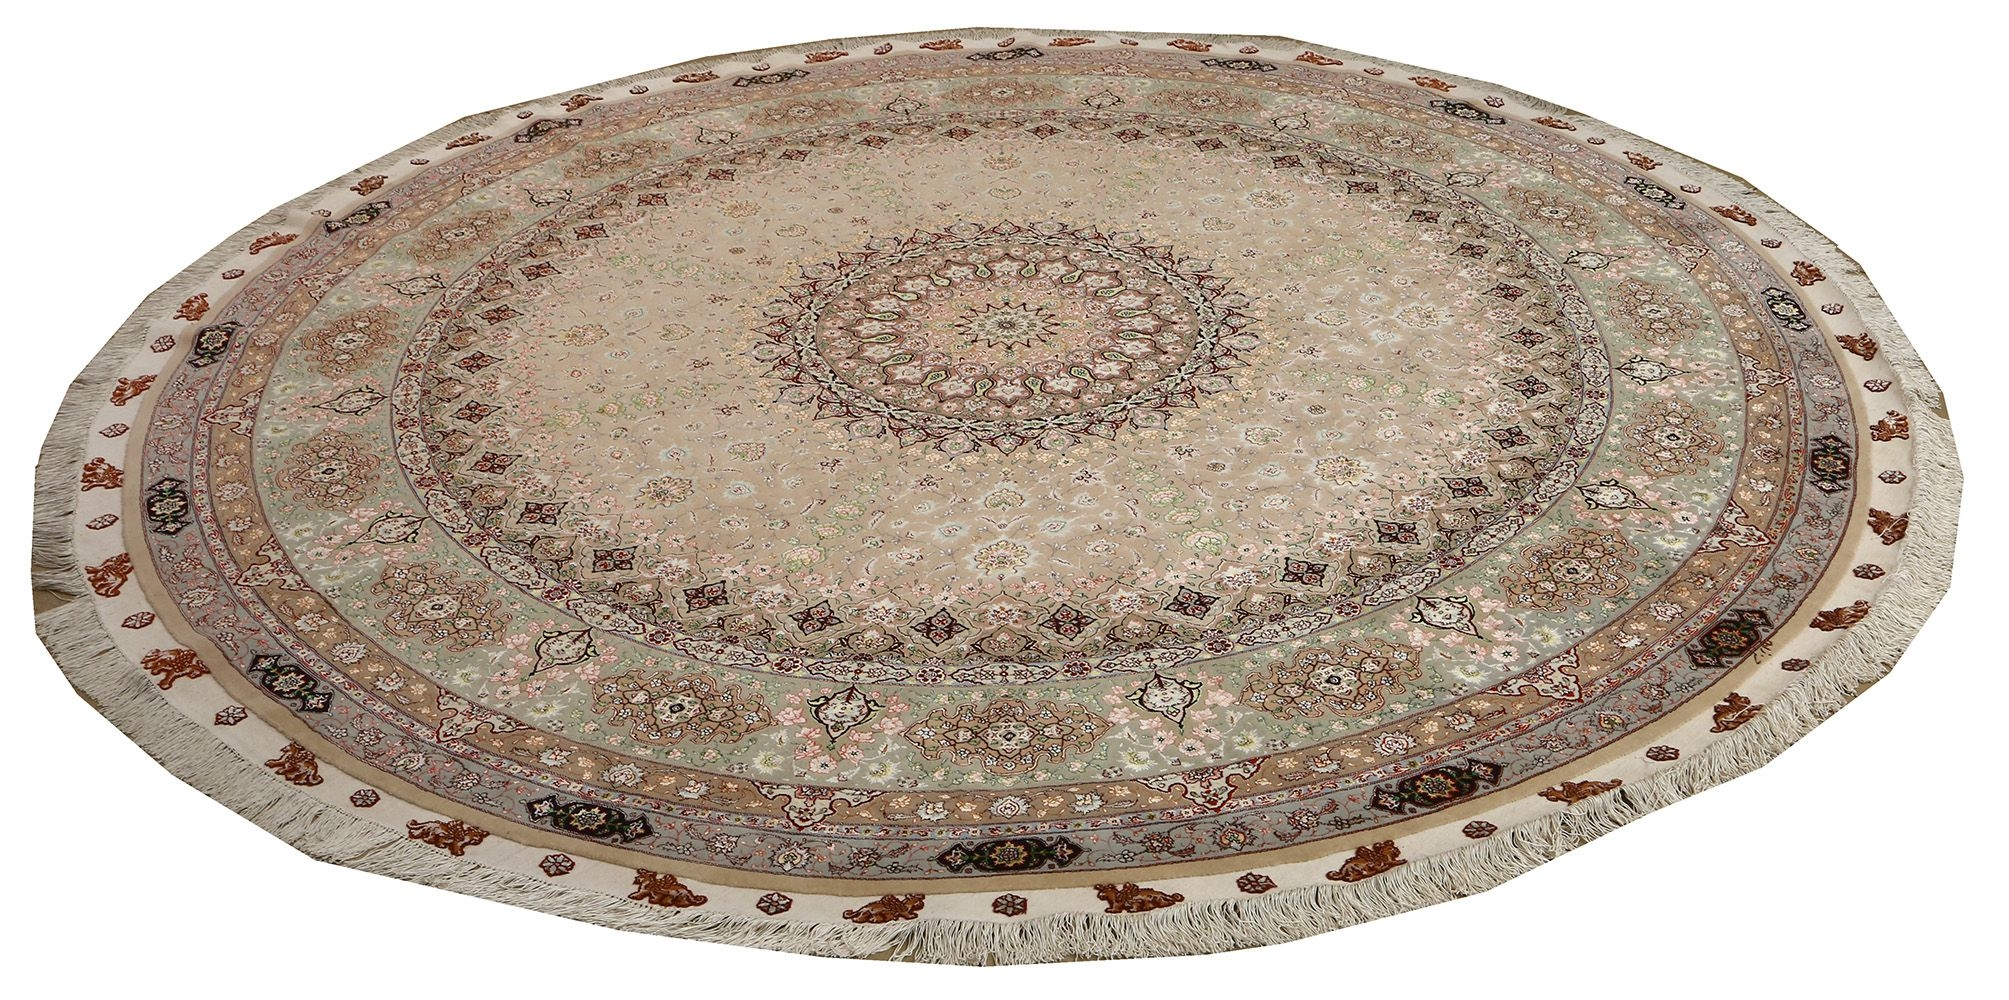 Beautiful Round Vintage Tabriz Persian Rug 51128 Nazmiyal Intended For Round Persian Rugs (Image 4 of 15)